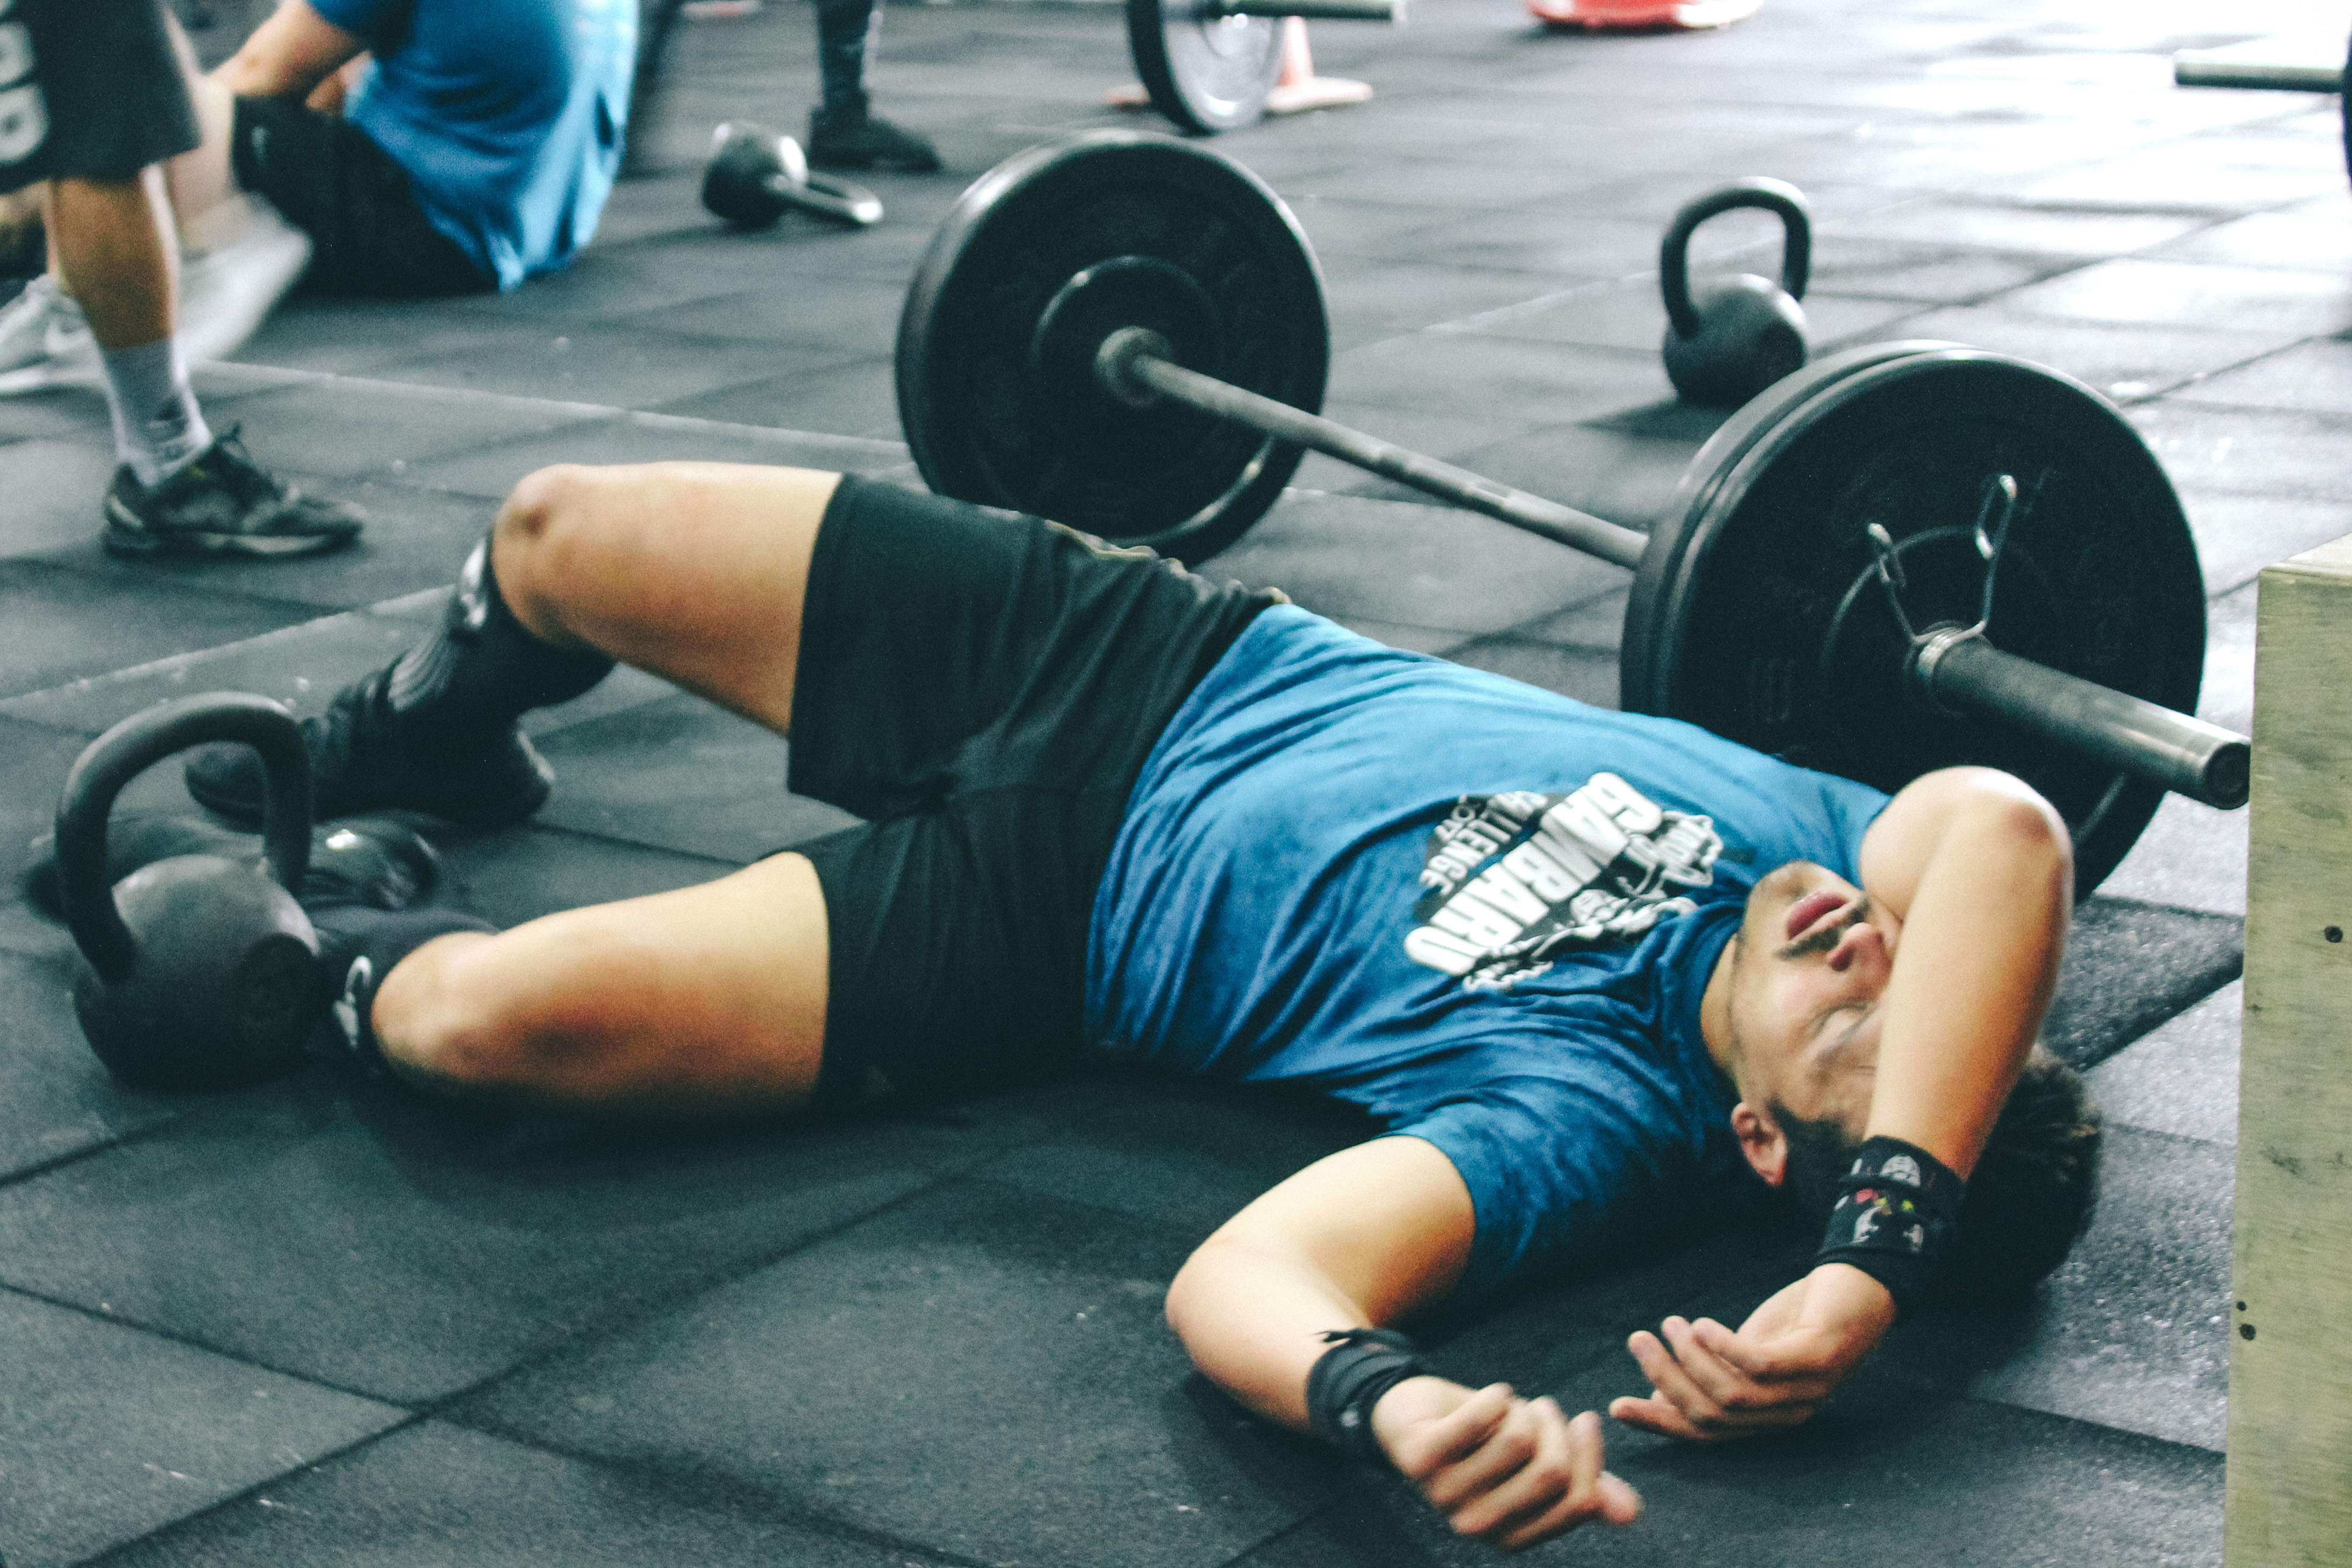 Canva - Man Lying on Rubber Mat Near Barbell Inside the Gym